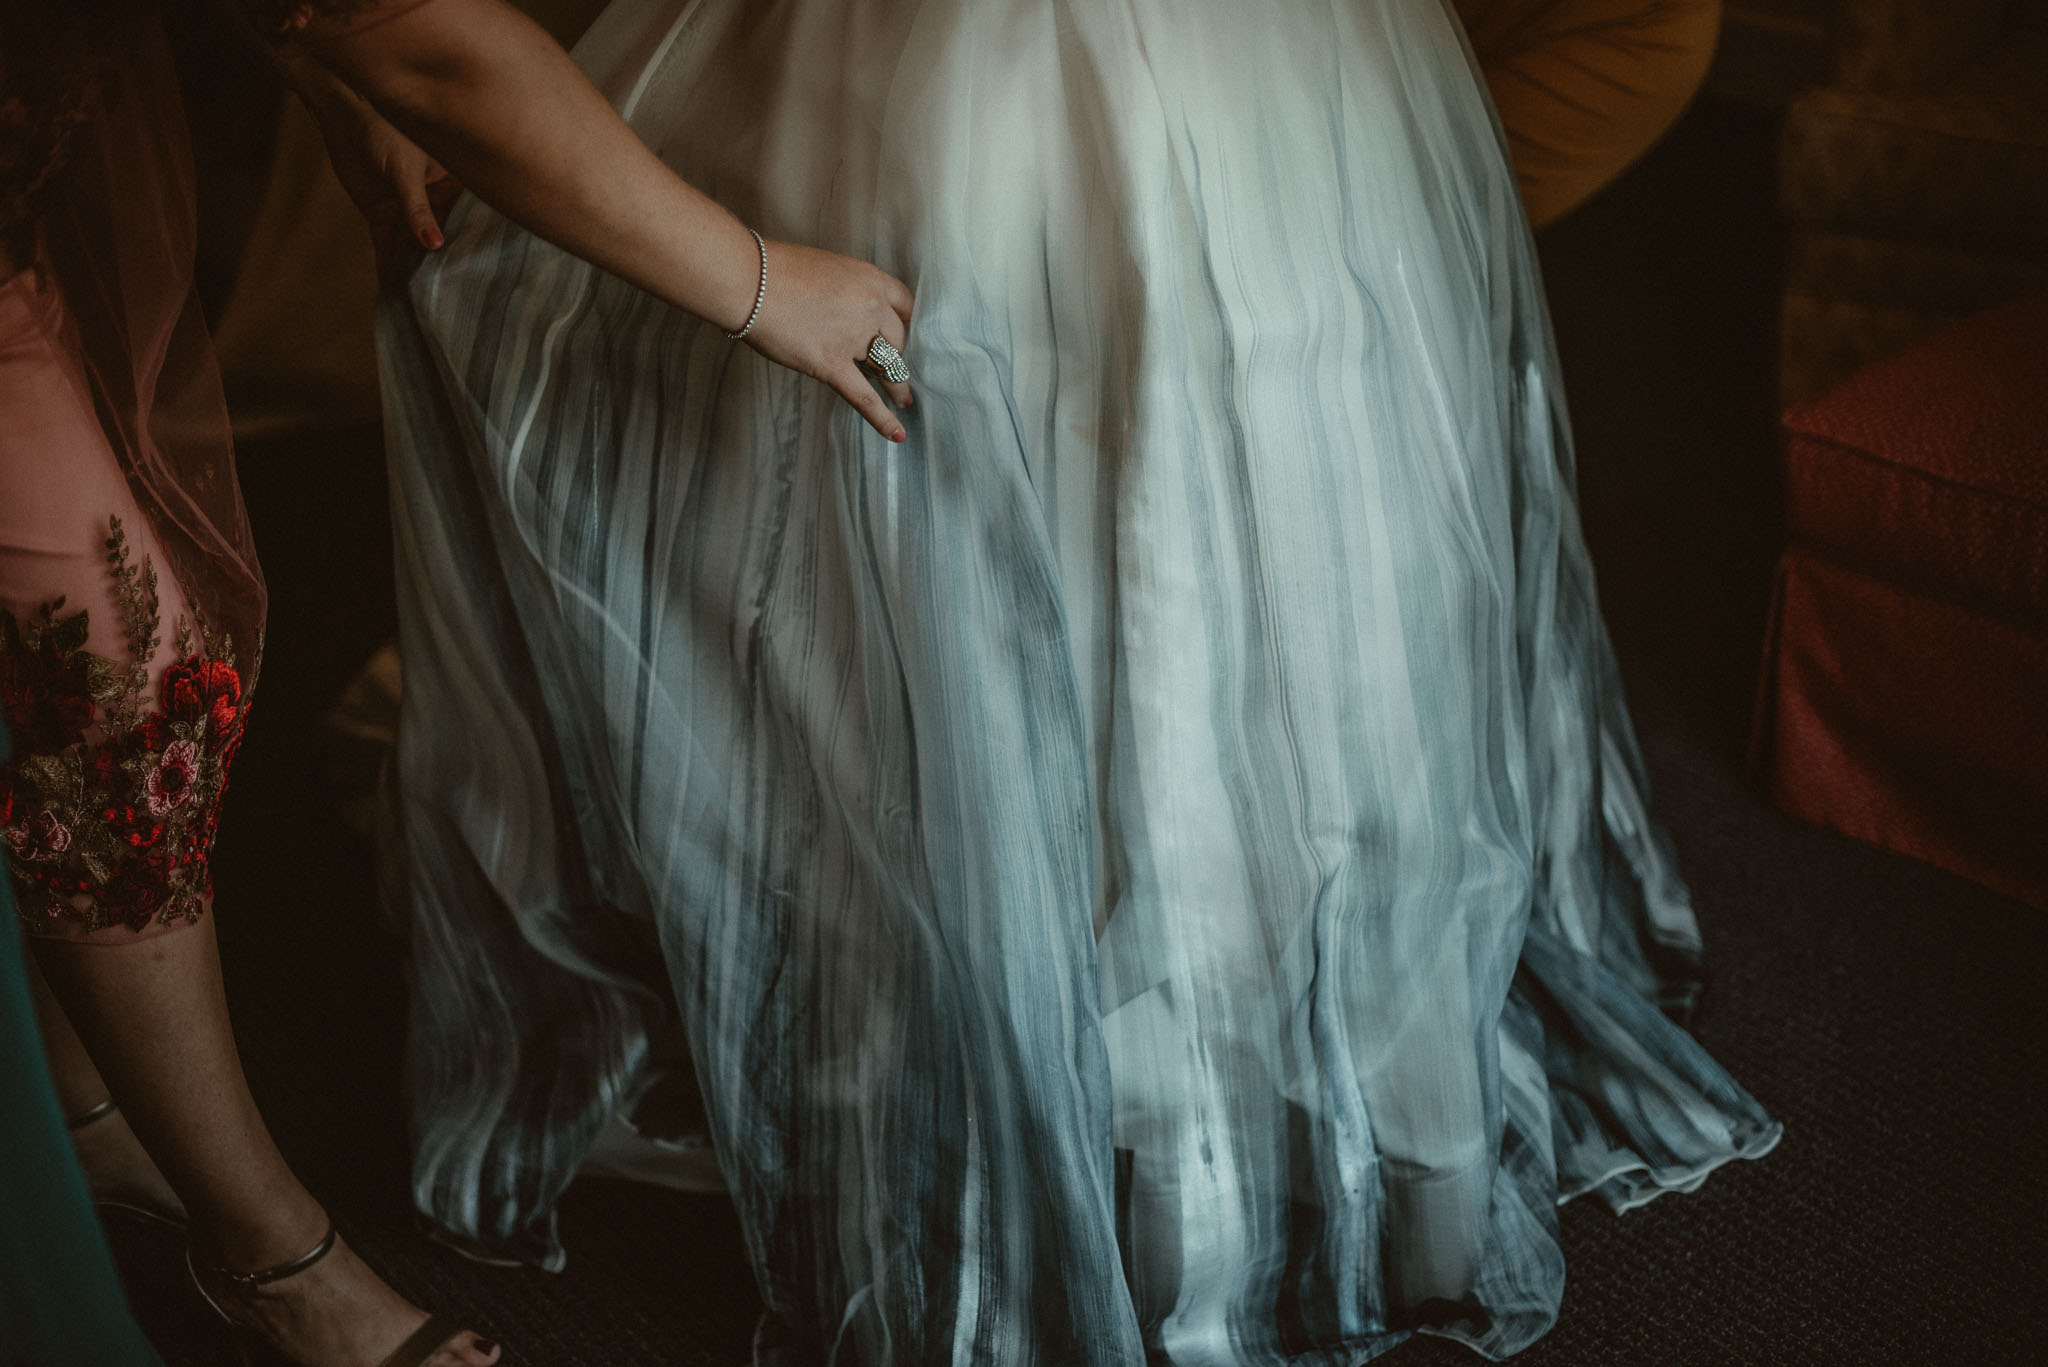 Close up of the brides blue dipped wedding dress skirt